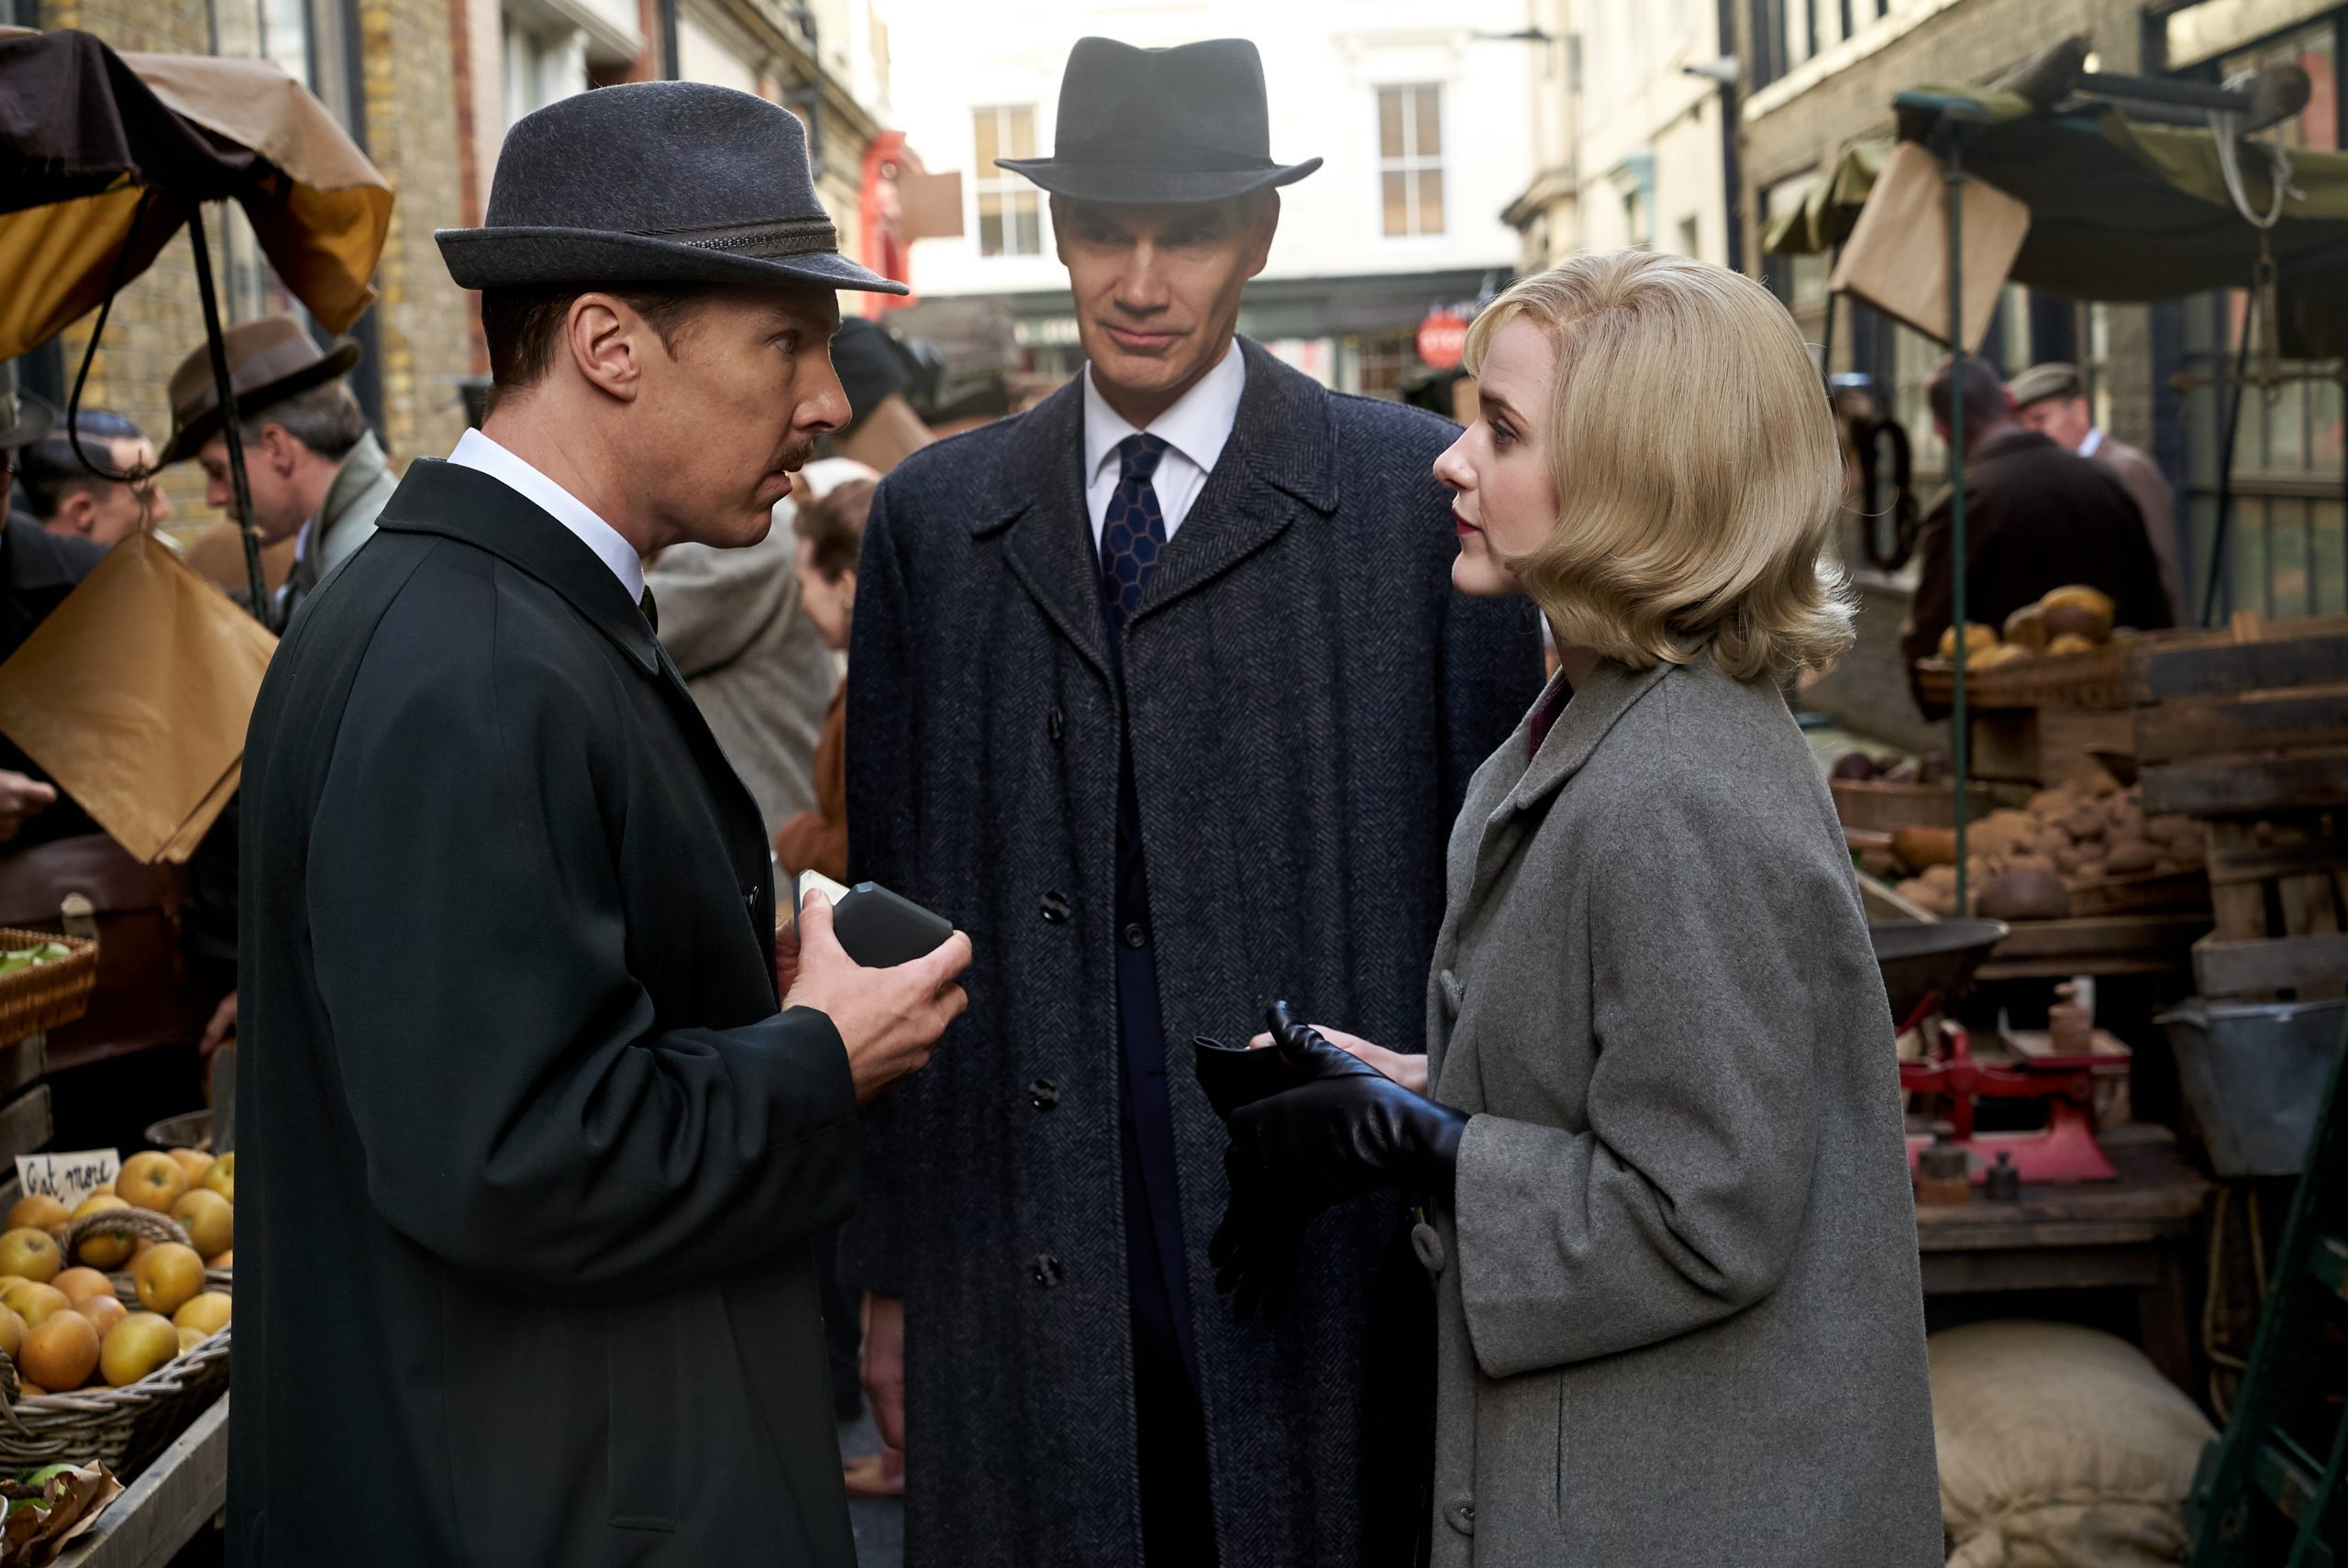 Cumberbatch is reliably excellent in the lead role, proving once again that he's one of the best of the best. But I must admit that Brosnahan stole the movie for me, and I love seeing her get the chance to mix things up.